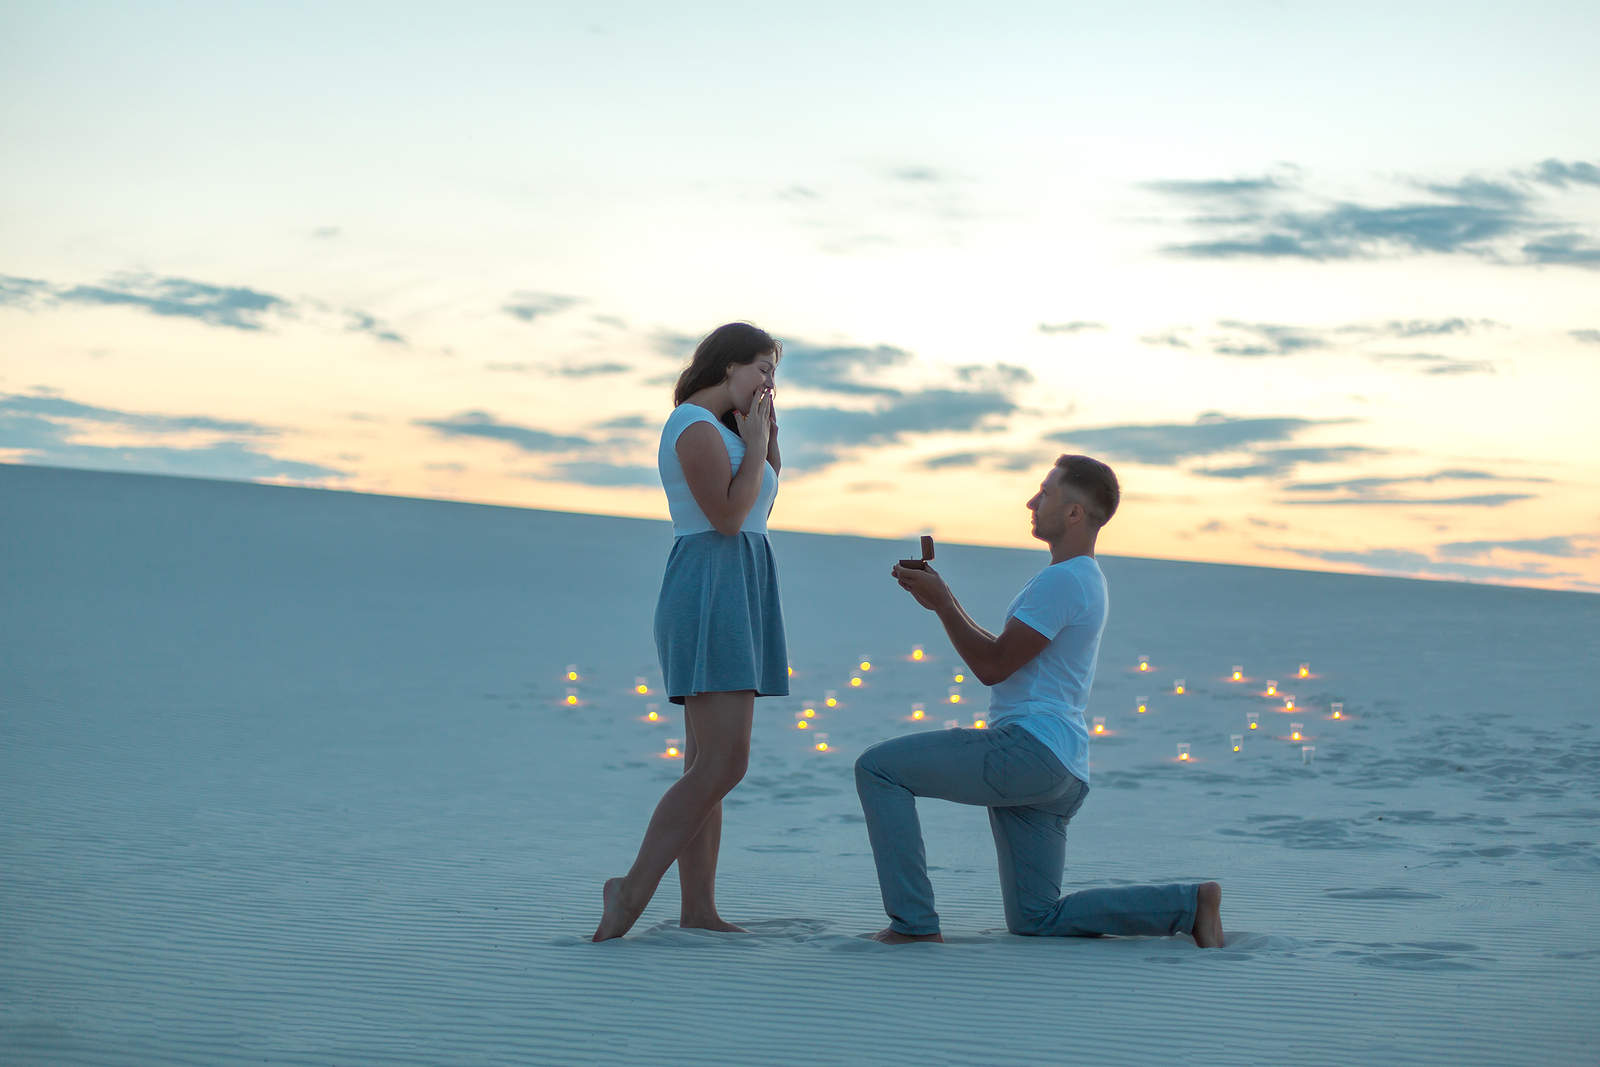 The guy makes the girl a marriage proposal by bending his knee while standing on the sand in the desert. Evening, candles burn in the sand